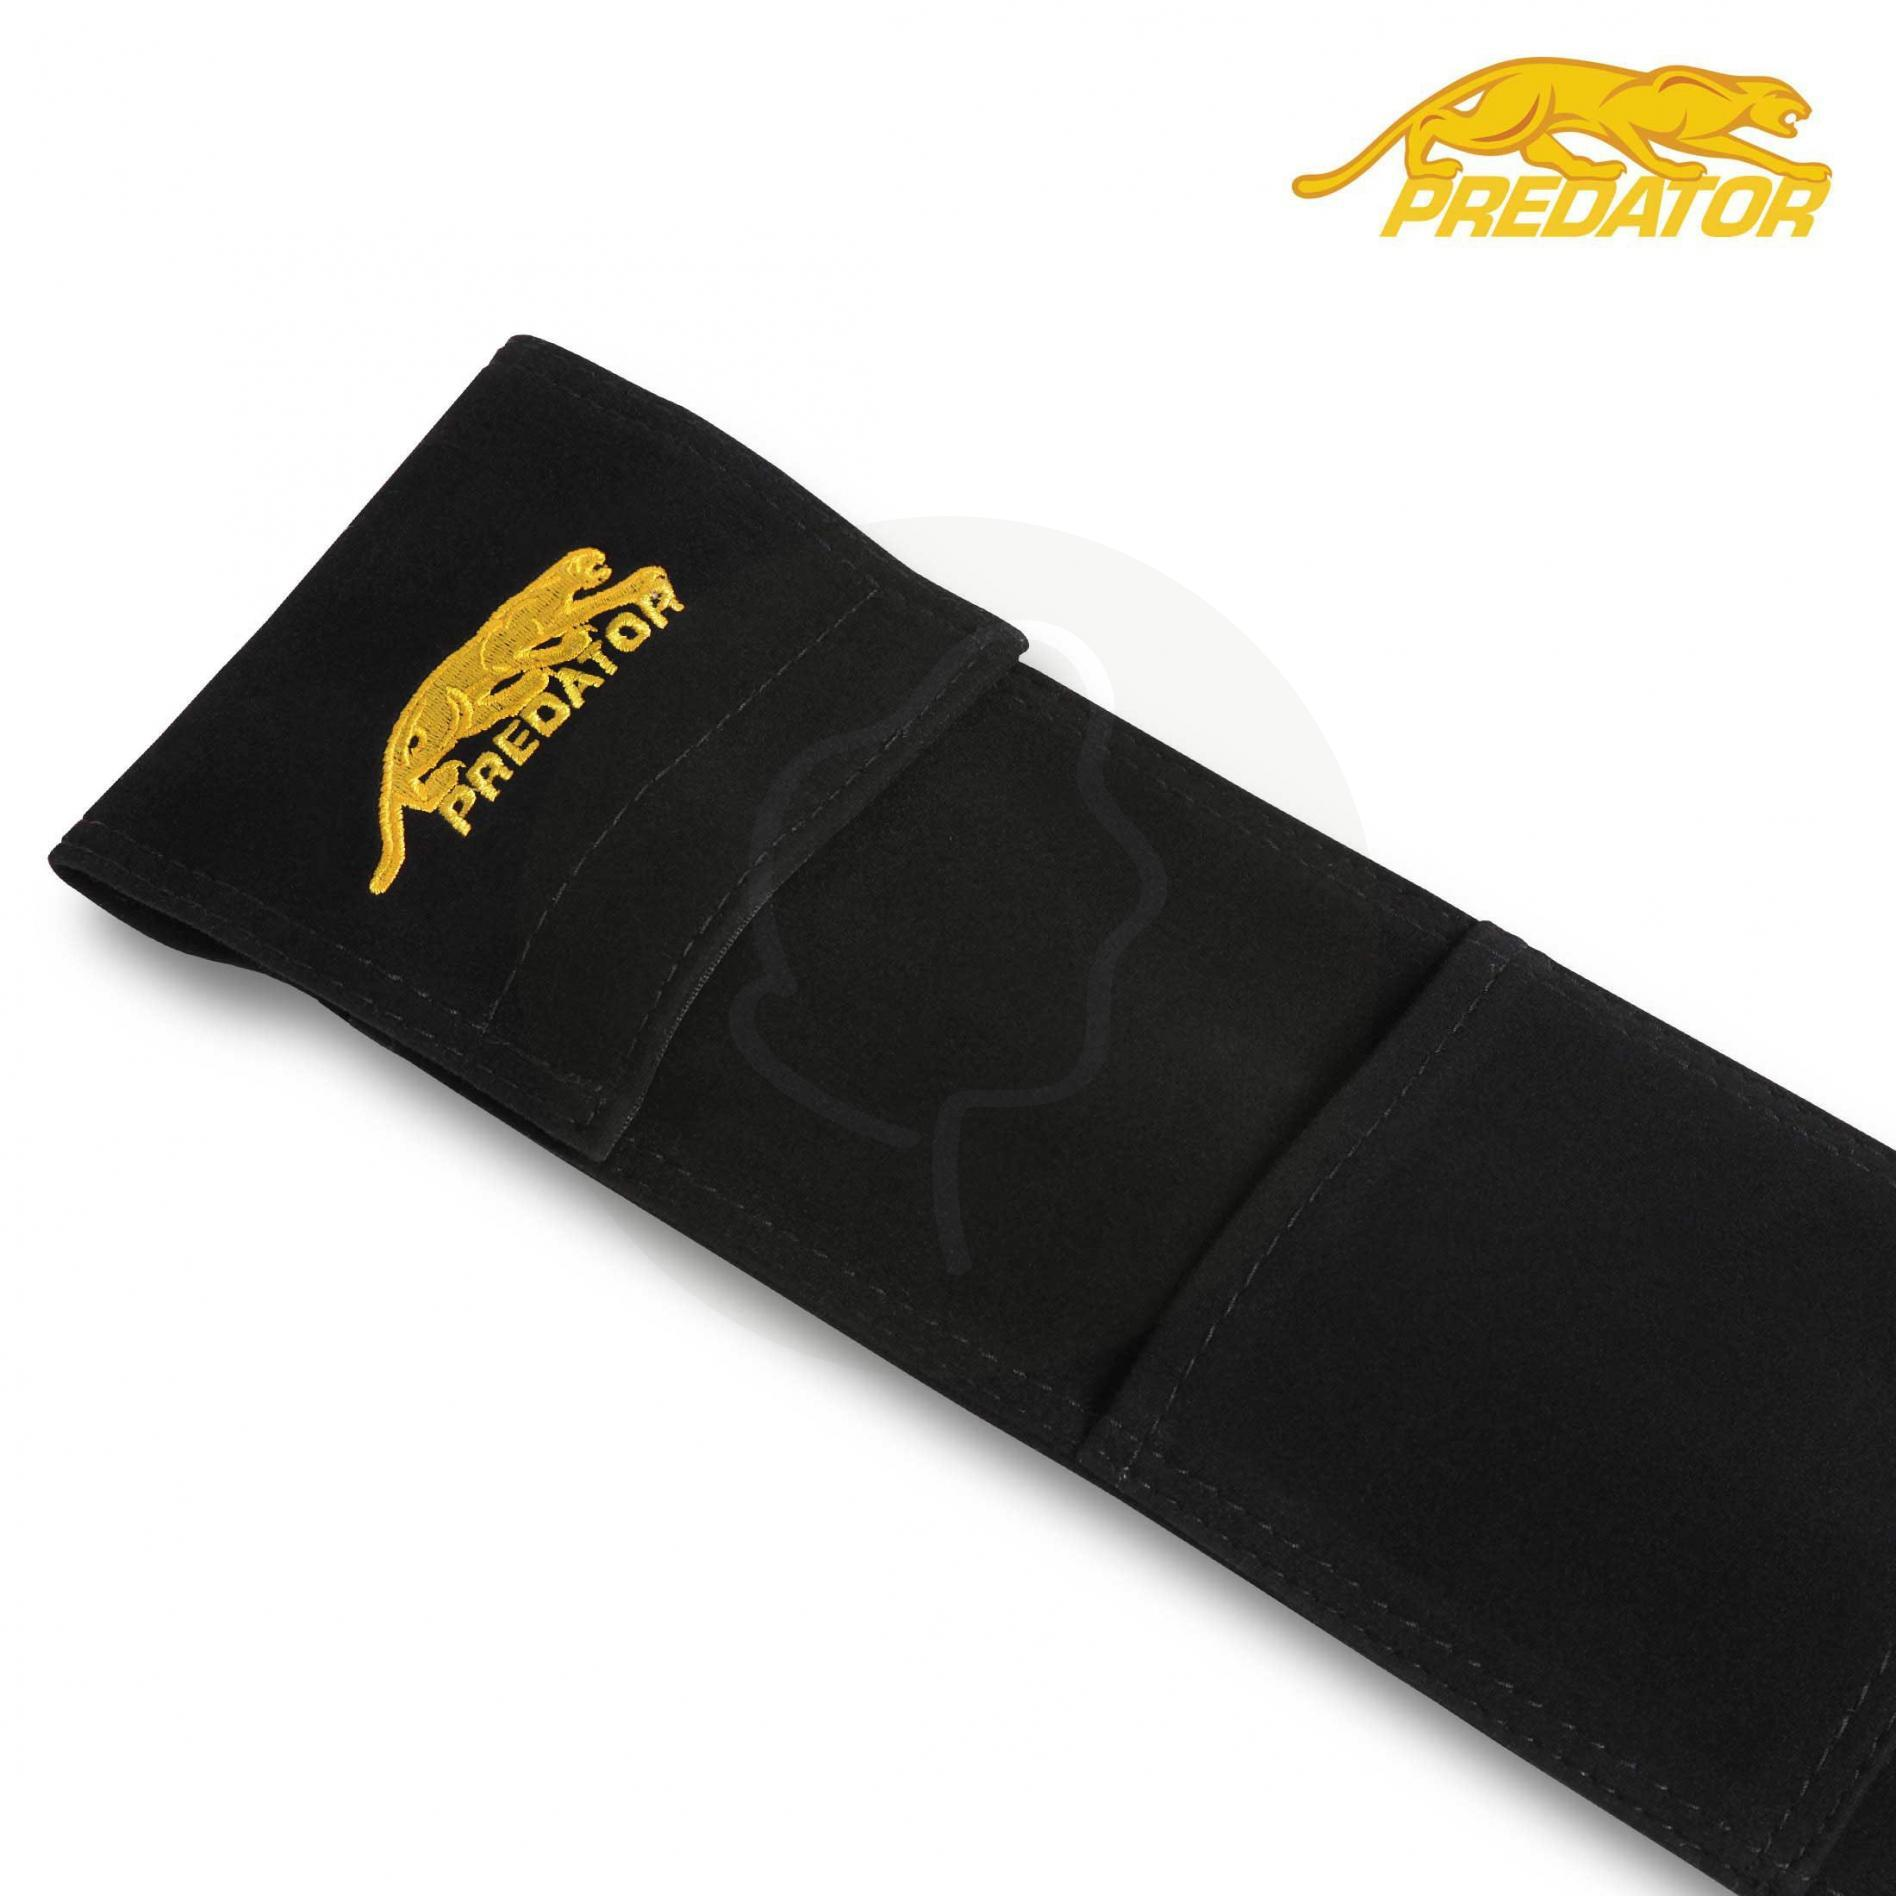 Кий Predator IKON³ 2 Leather Luxe™ 314³ 2PC Пул 19oz